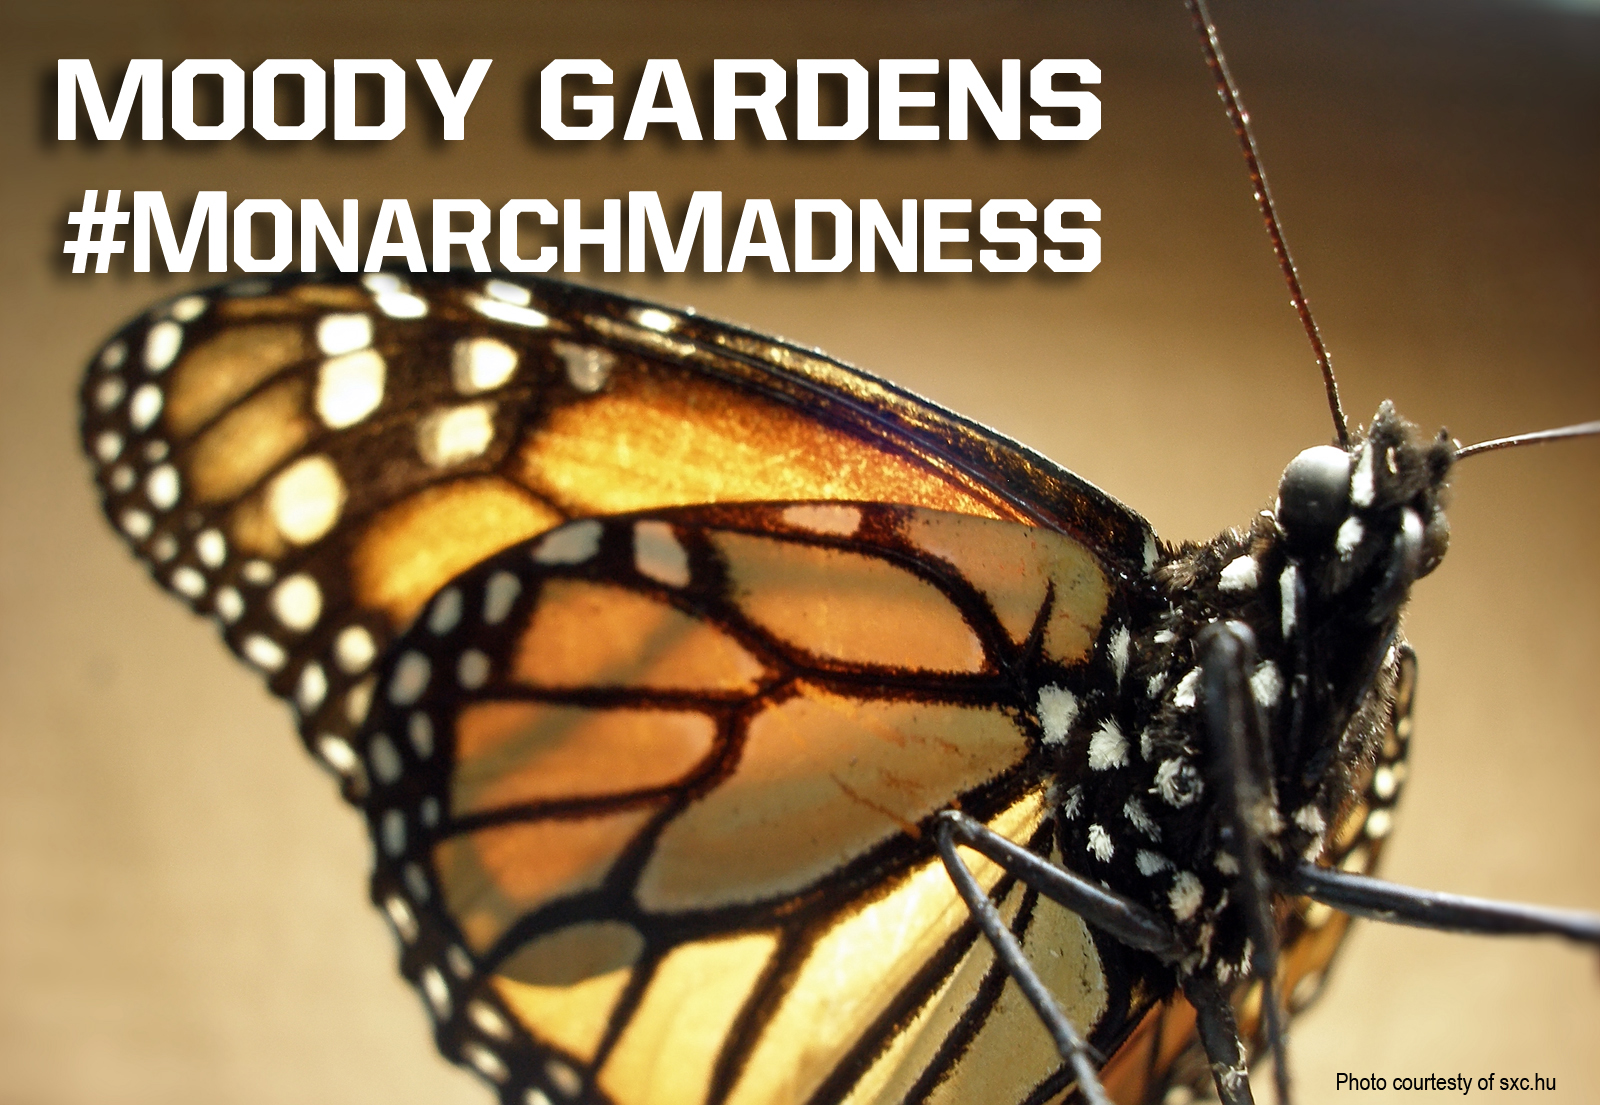 Monarch Madness at Moody Gardens!